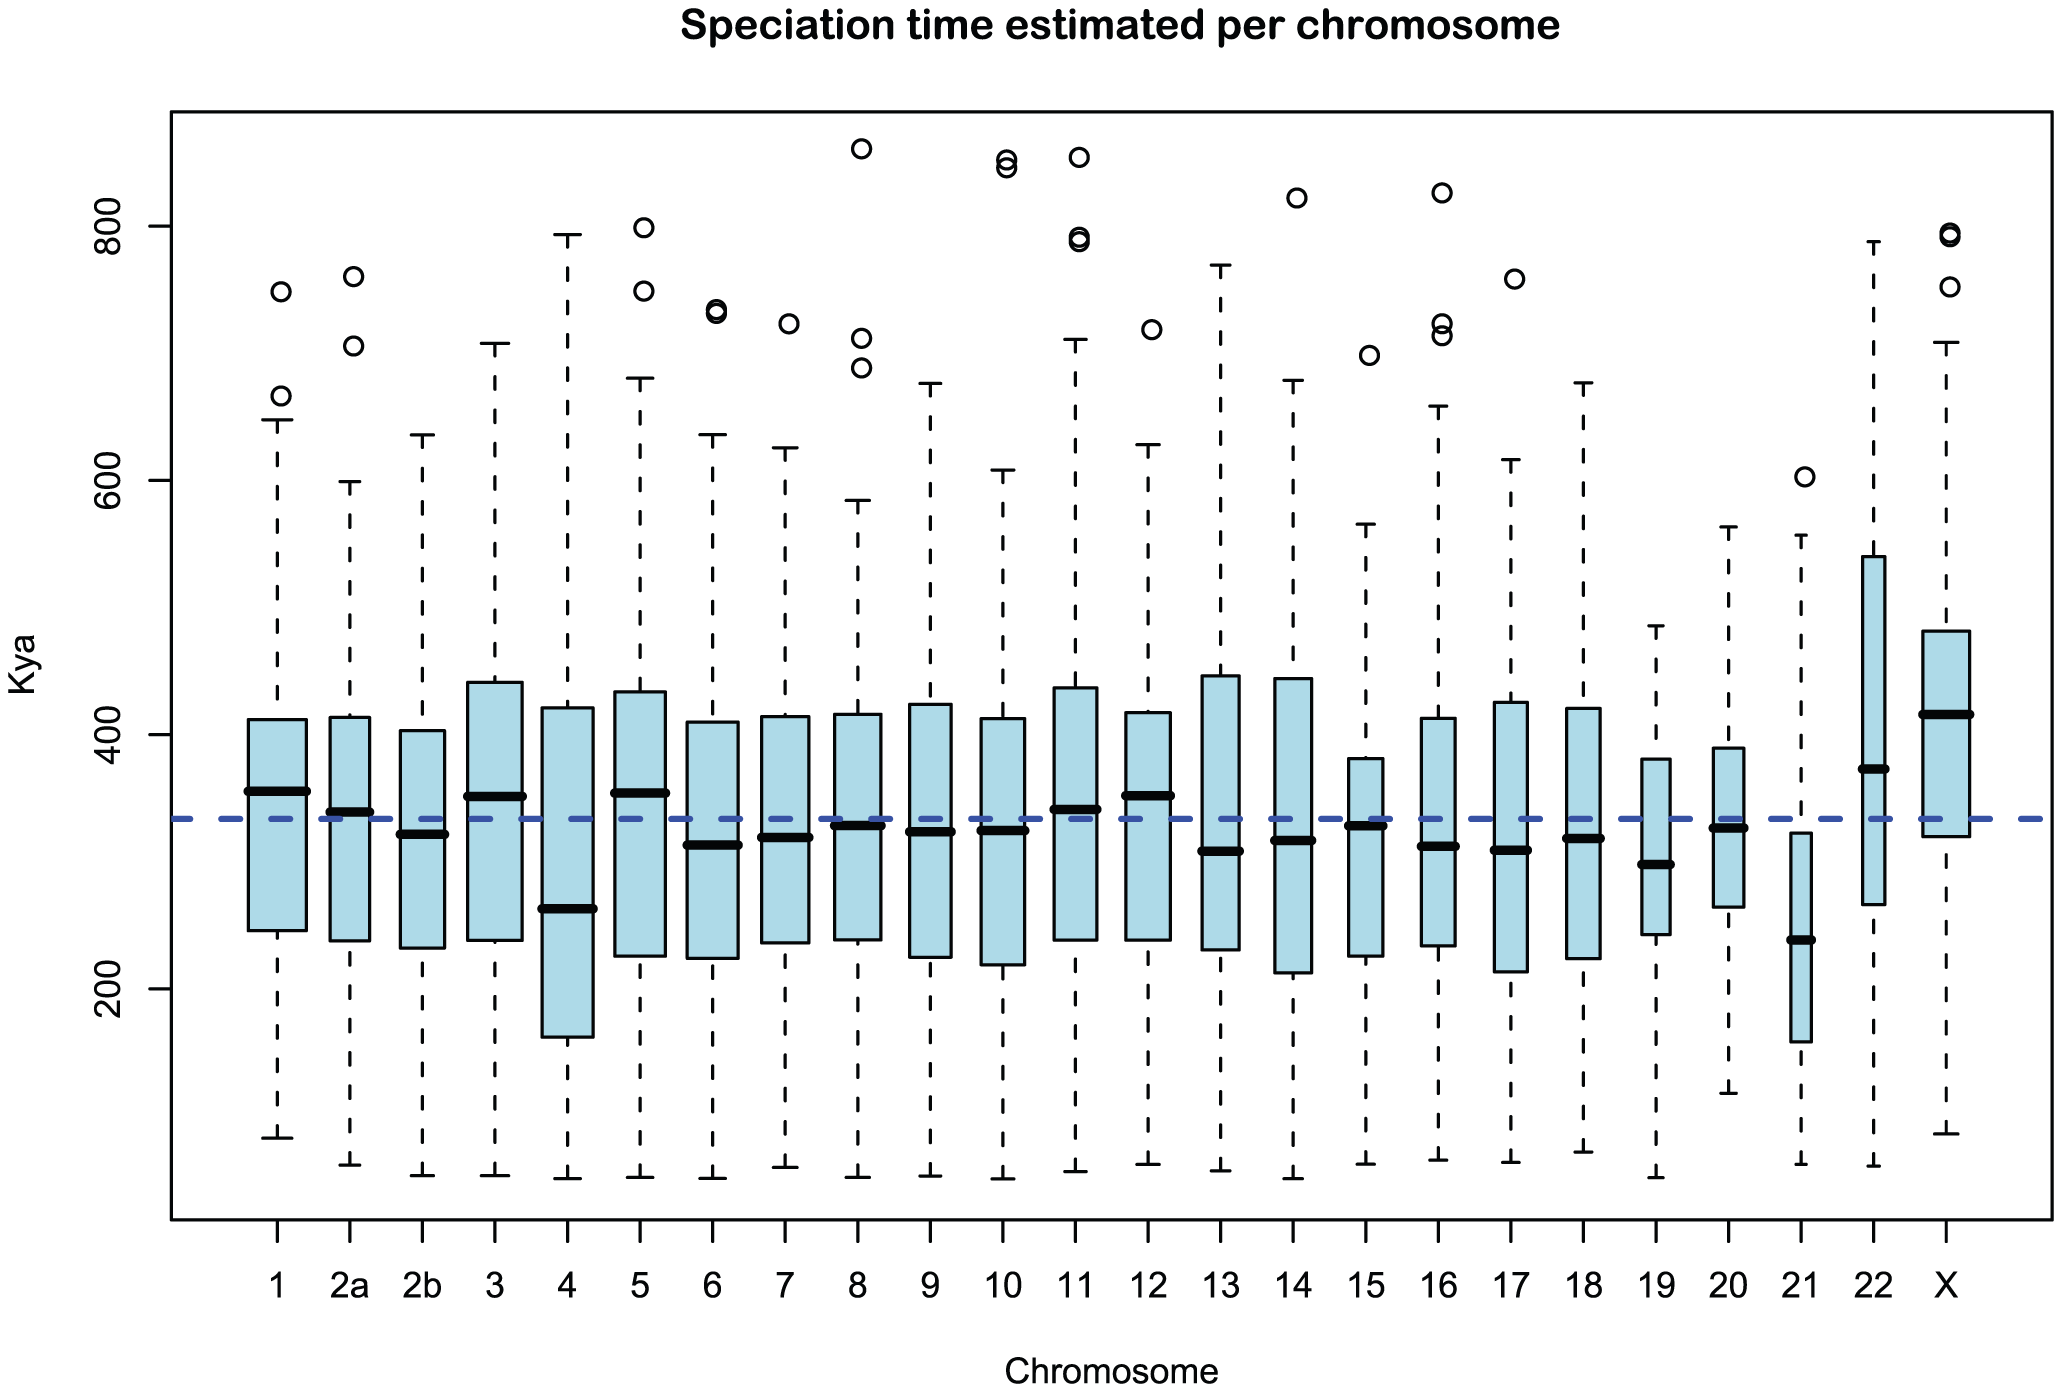 Distribution of sub-speciation time estimates for each chromosome.